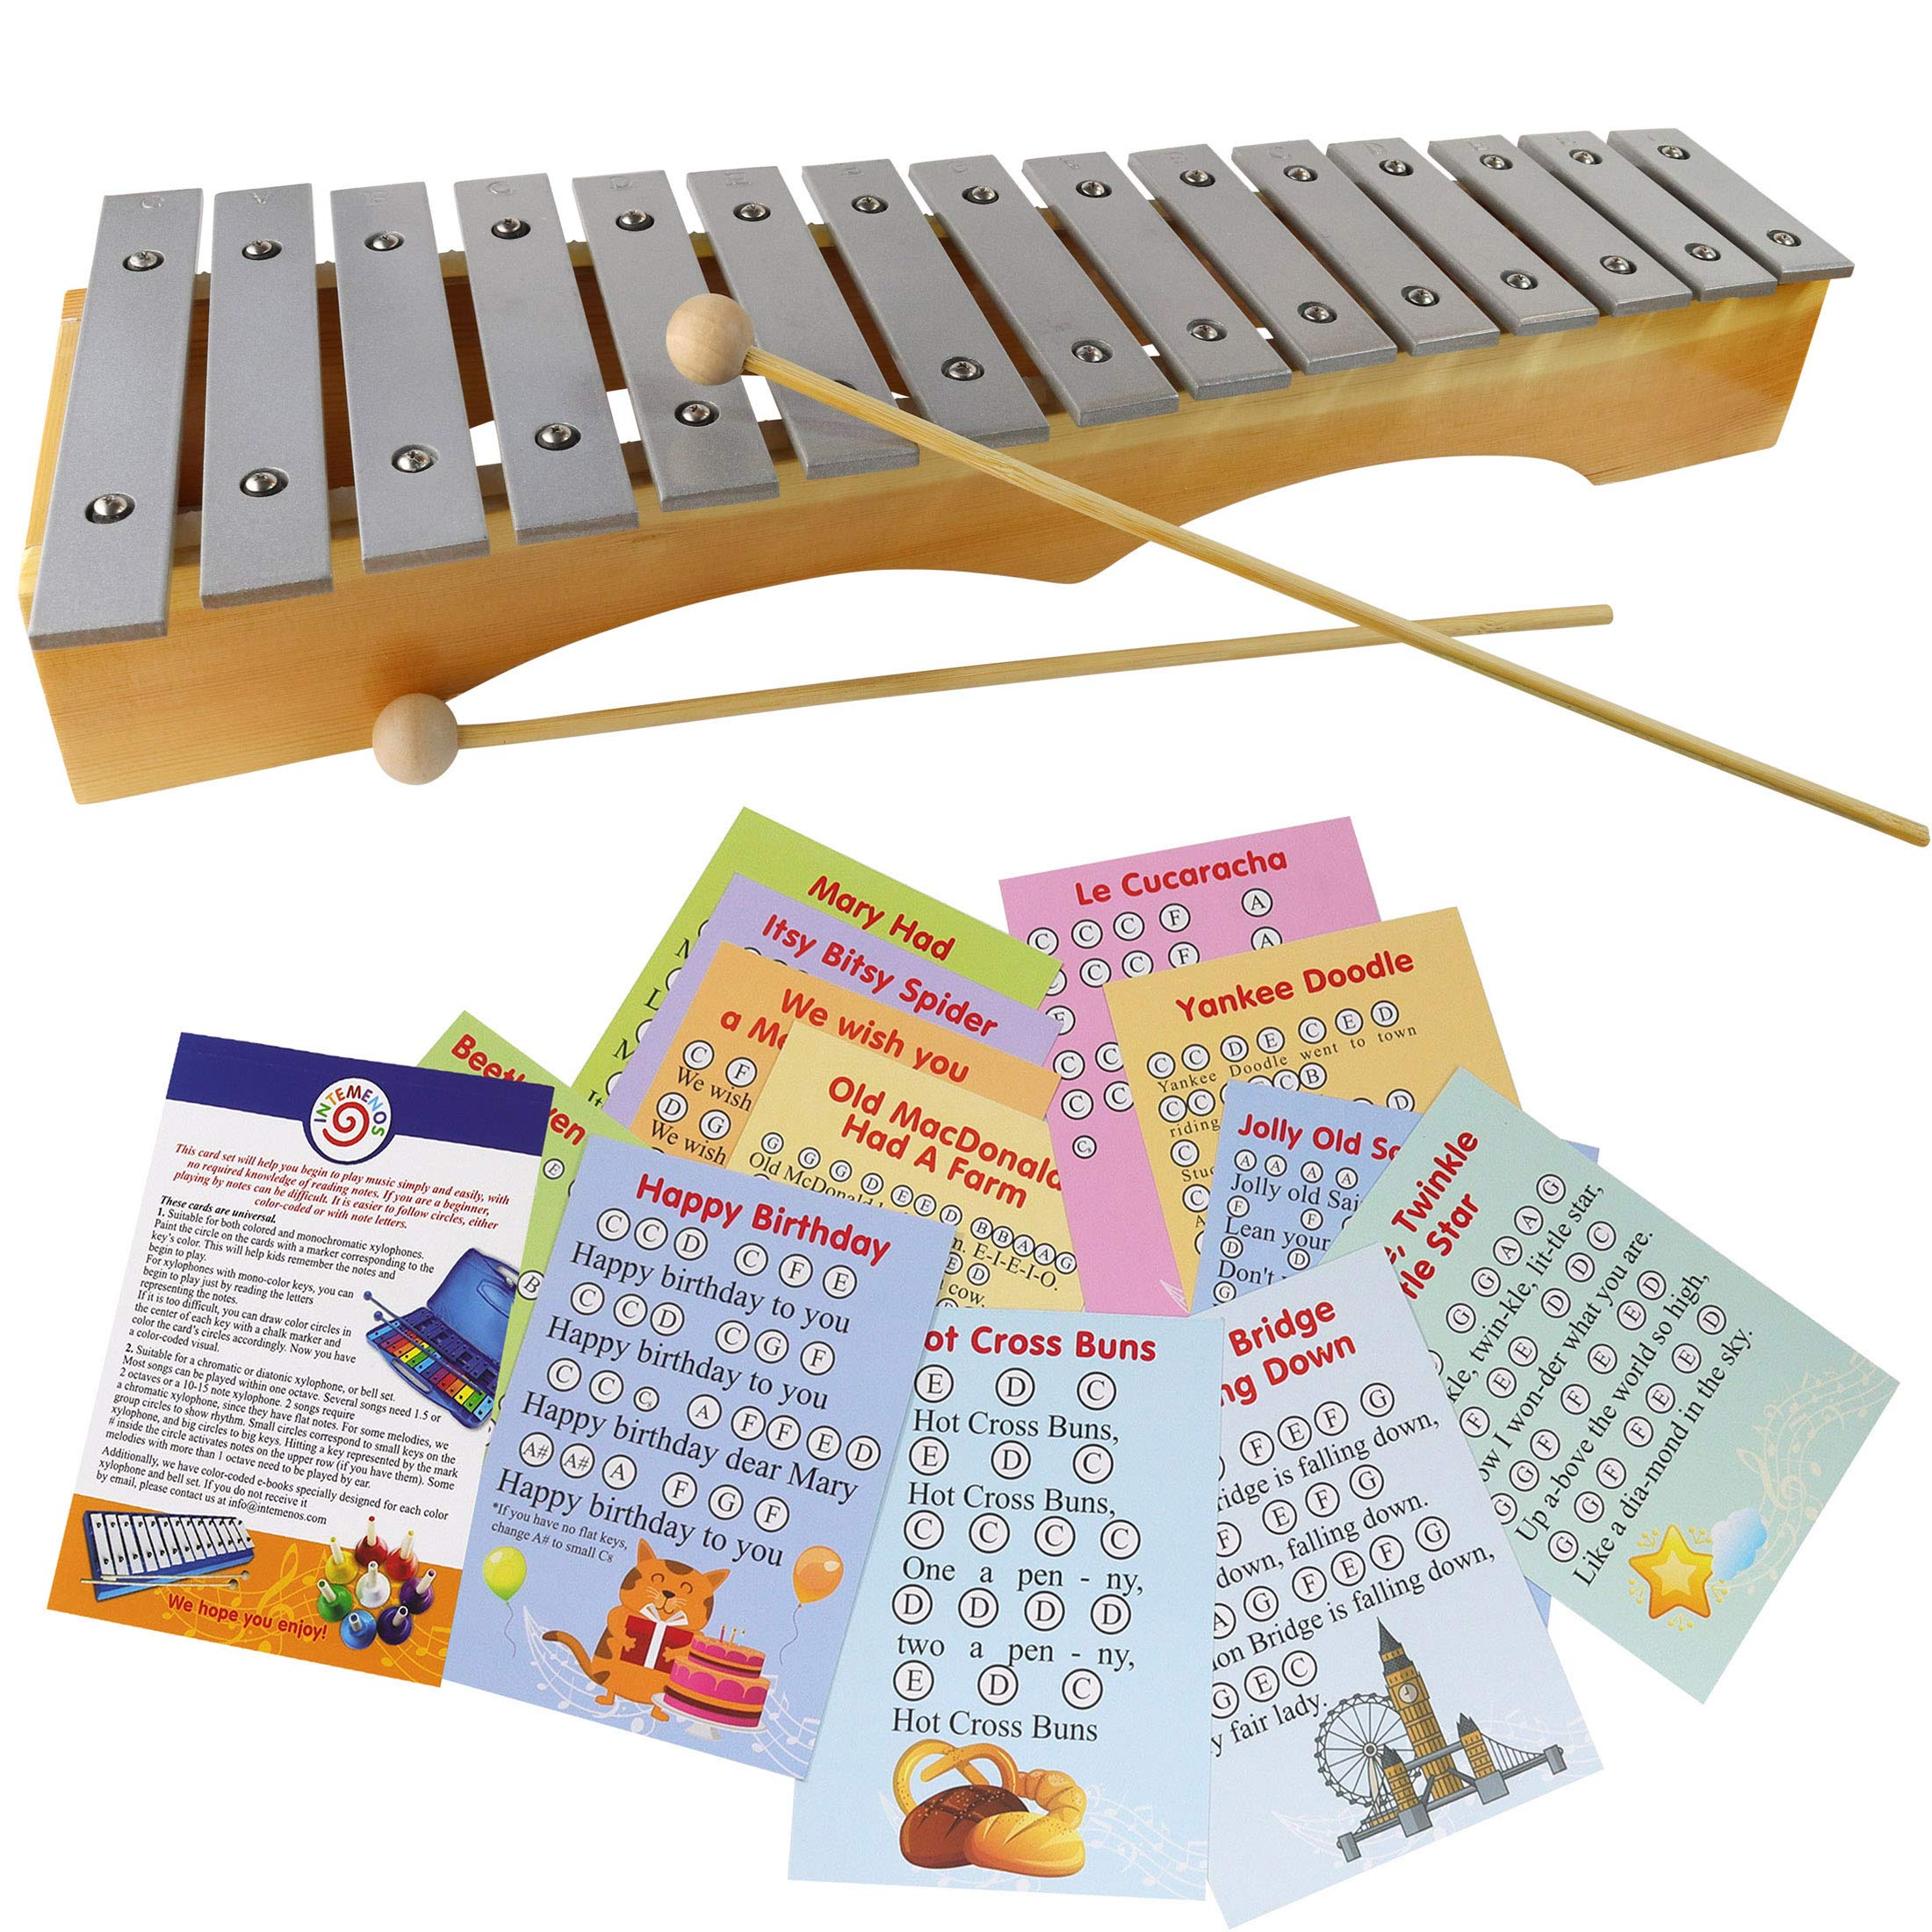 Metal Xylophone for Adults - Professional Diatonic Glockenspiel by inTemenos